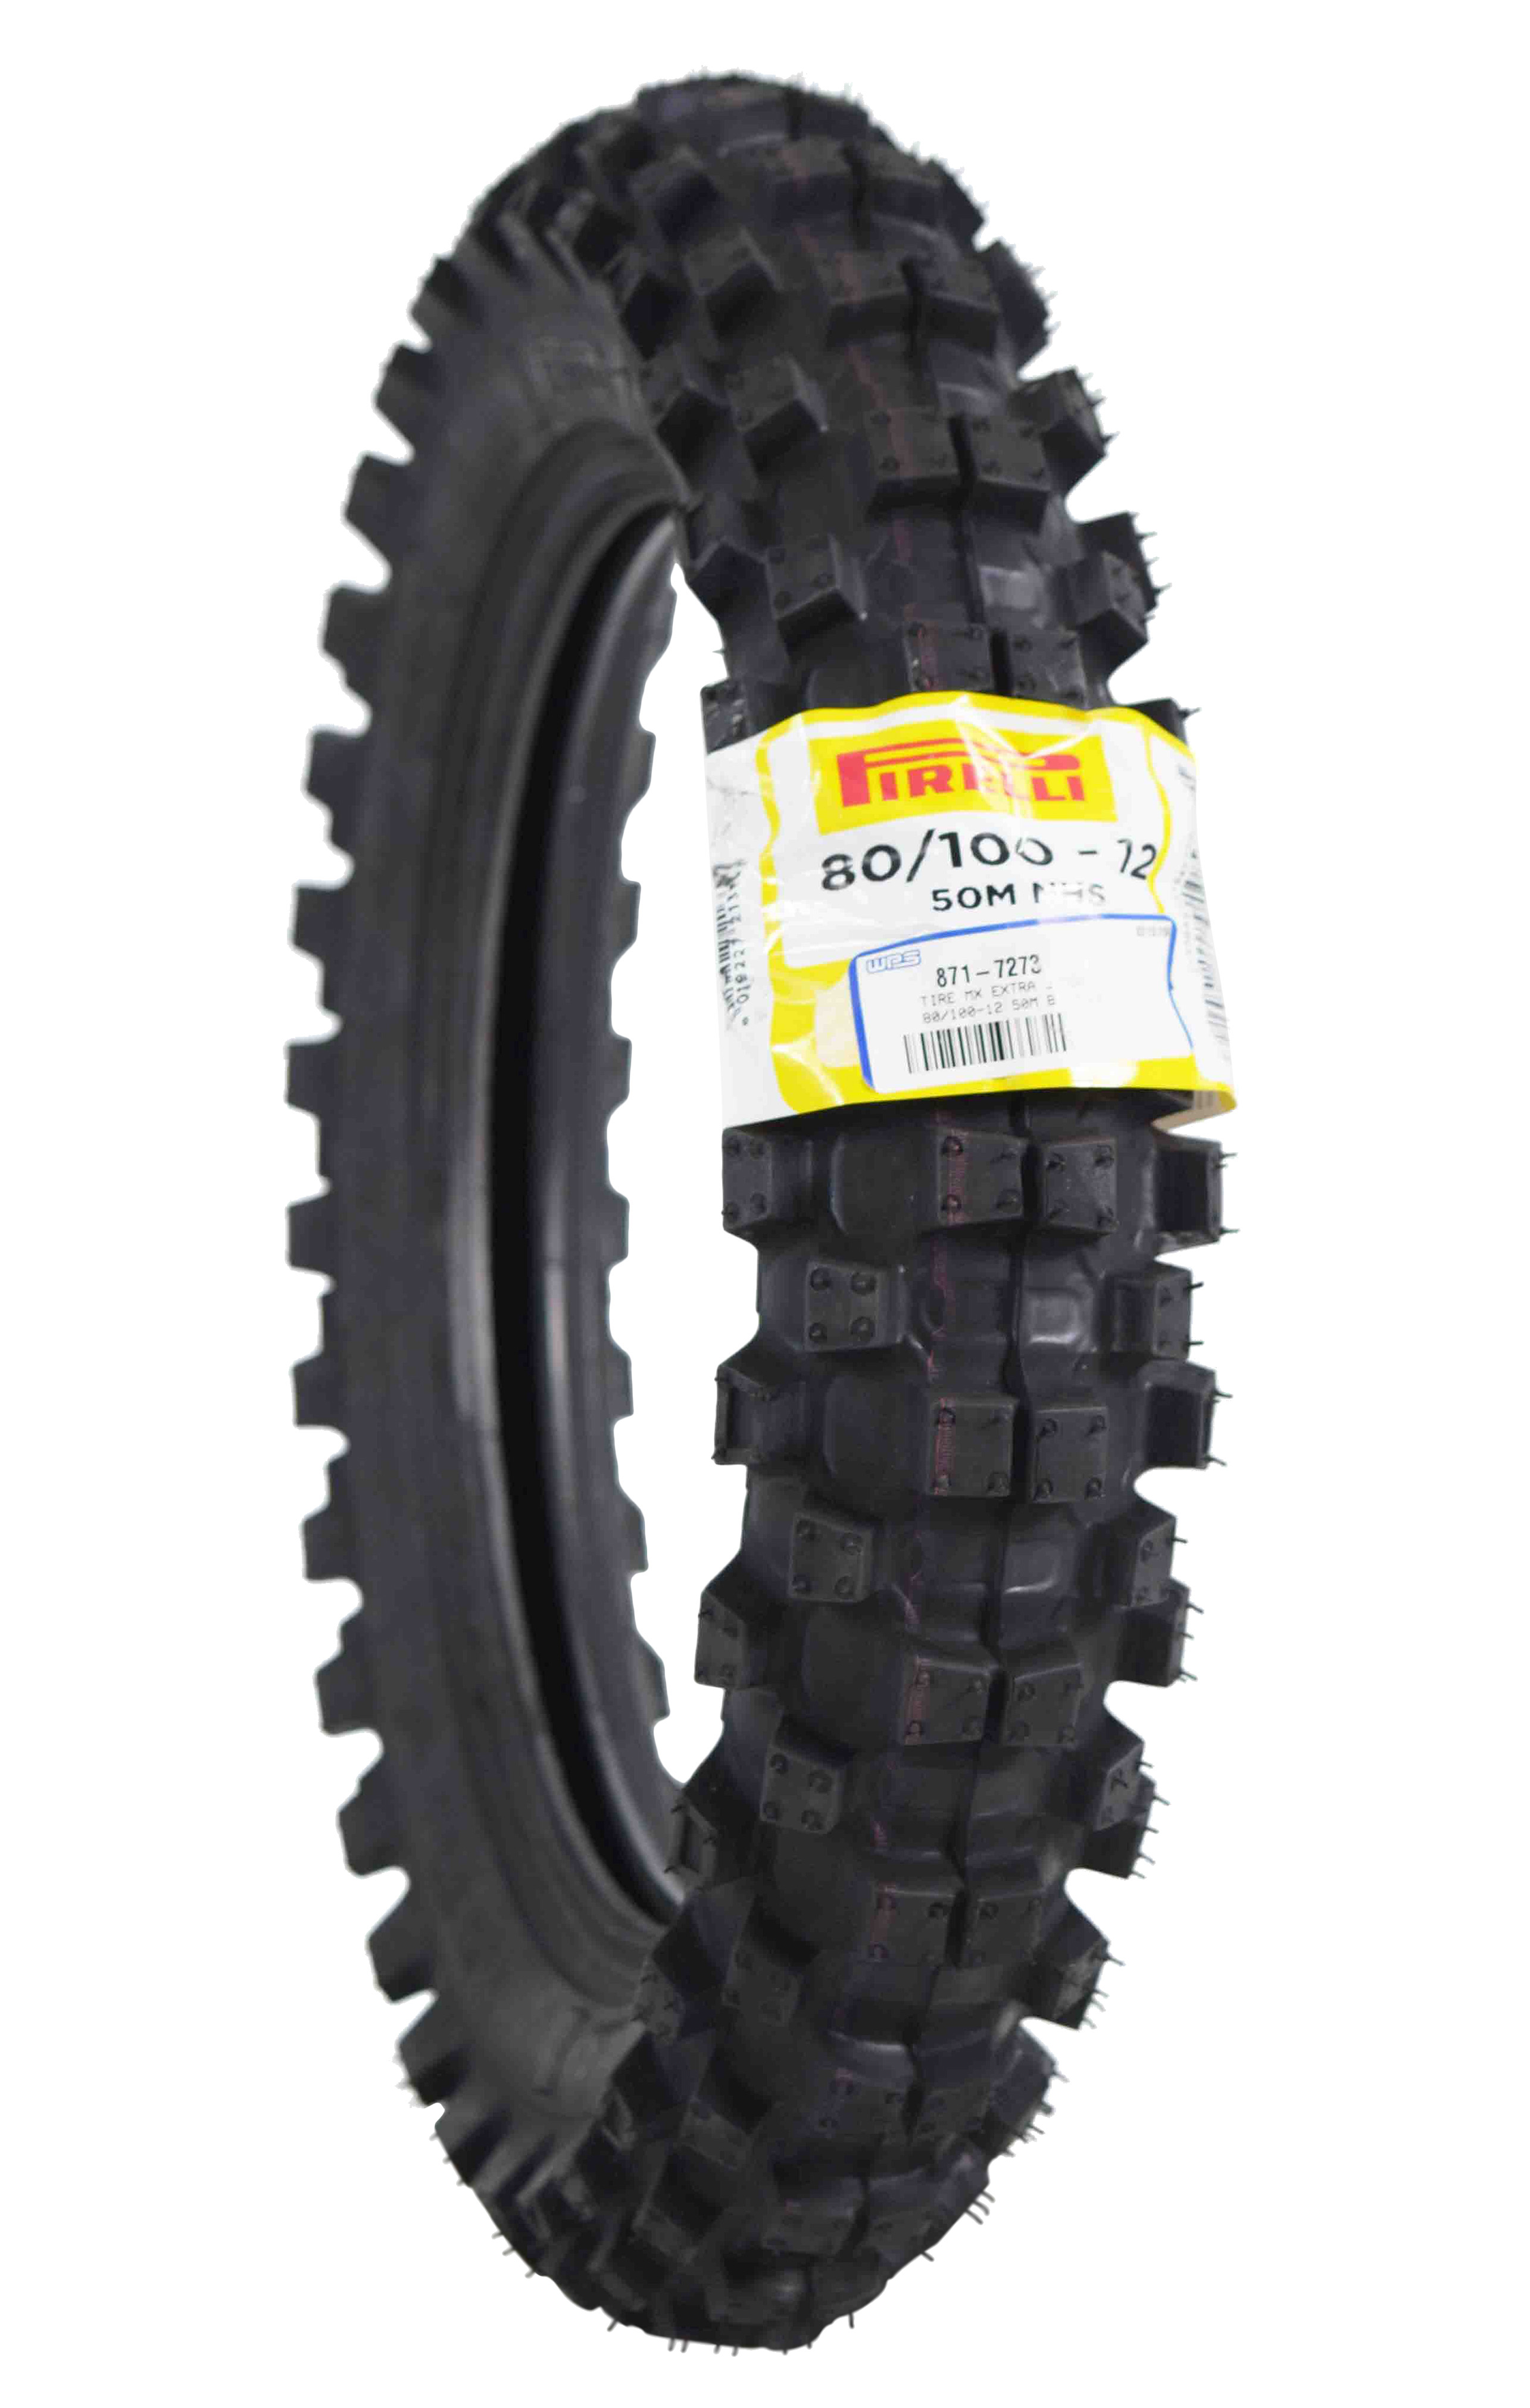 Pirelli-Scorpion-MX-Extra-J-60-100-14-Front-80-100-12-Rear-Pit-Bike-Motorcycle-Tires-Set-image-7